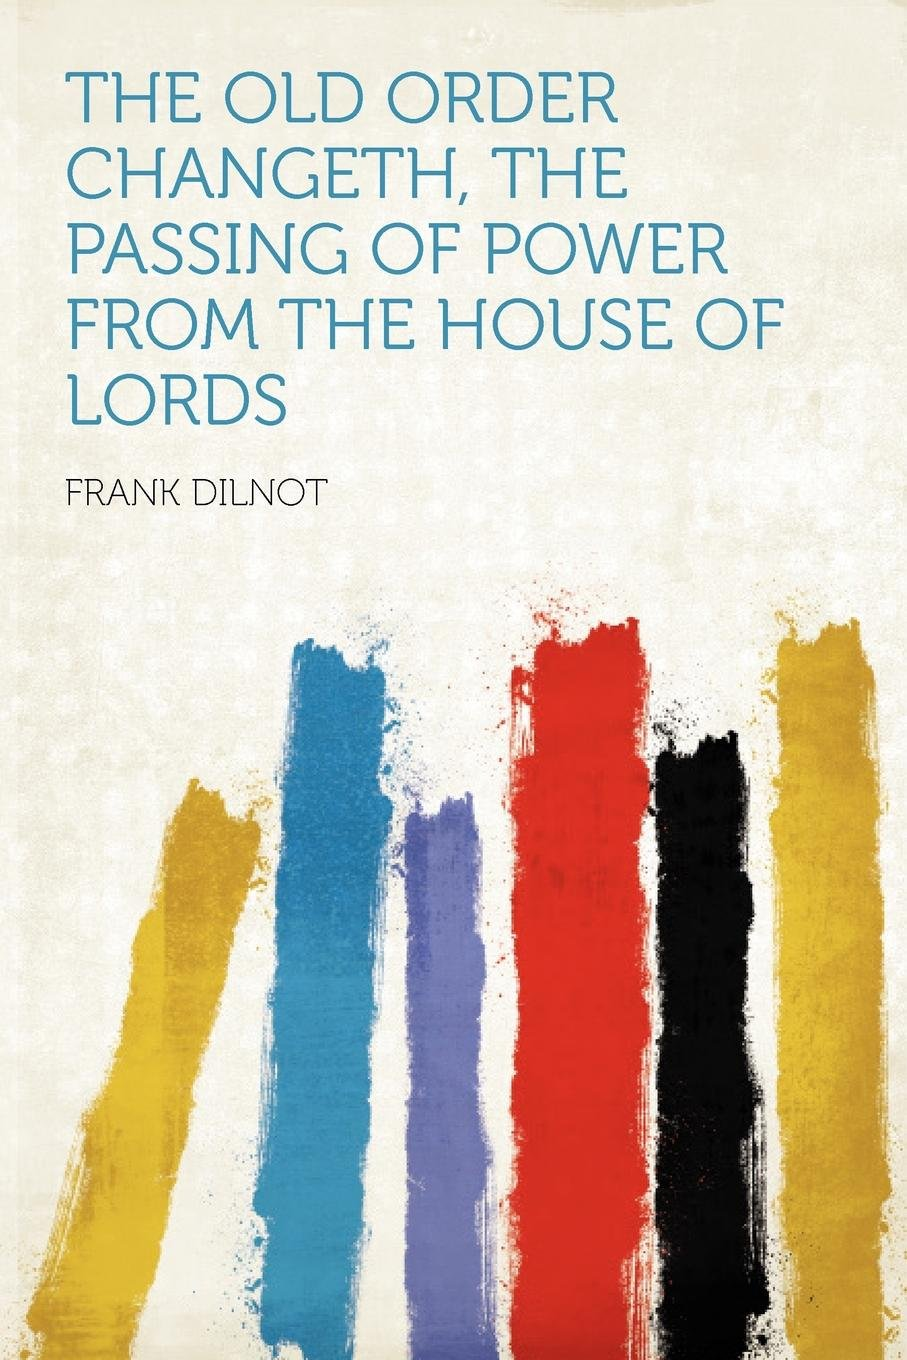 The Old Order Changeth, the Passing of Power From the House of Lords PDF